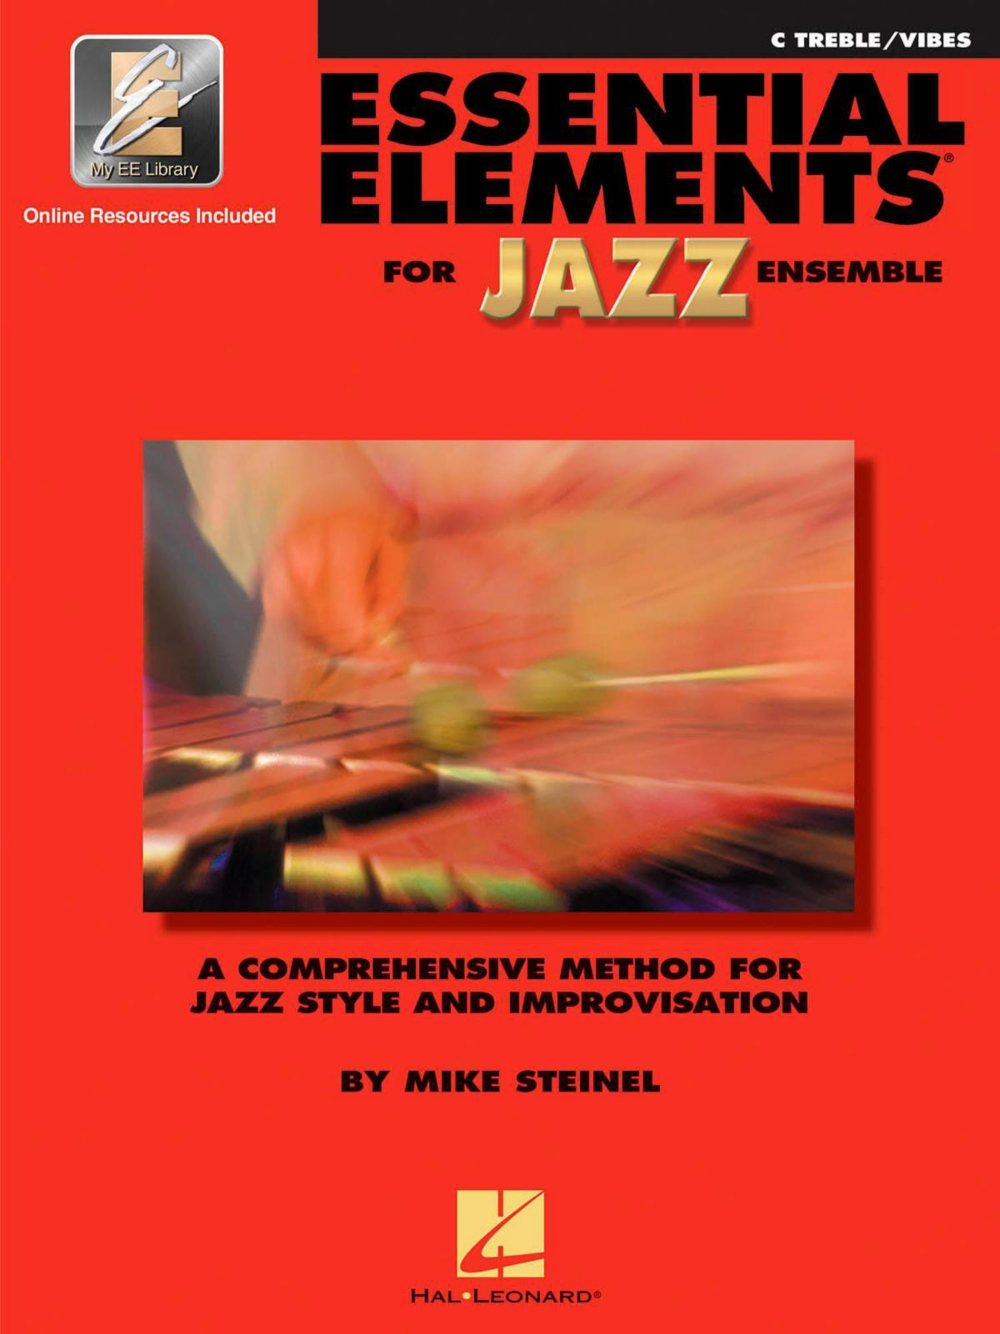 Hal Leonard Essential Elements for Jazz Ensemble C Treble Vibes (Book Online Audio) by Hal Leonard